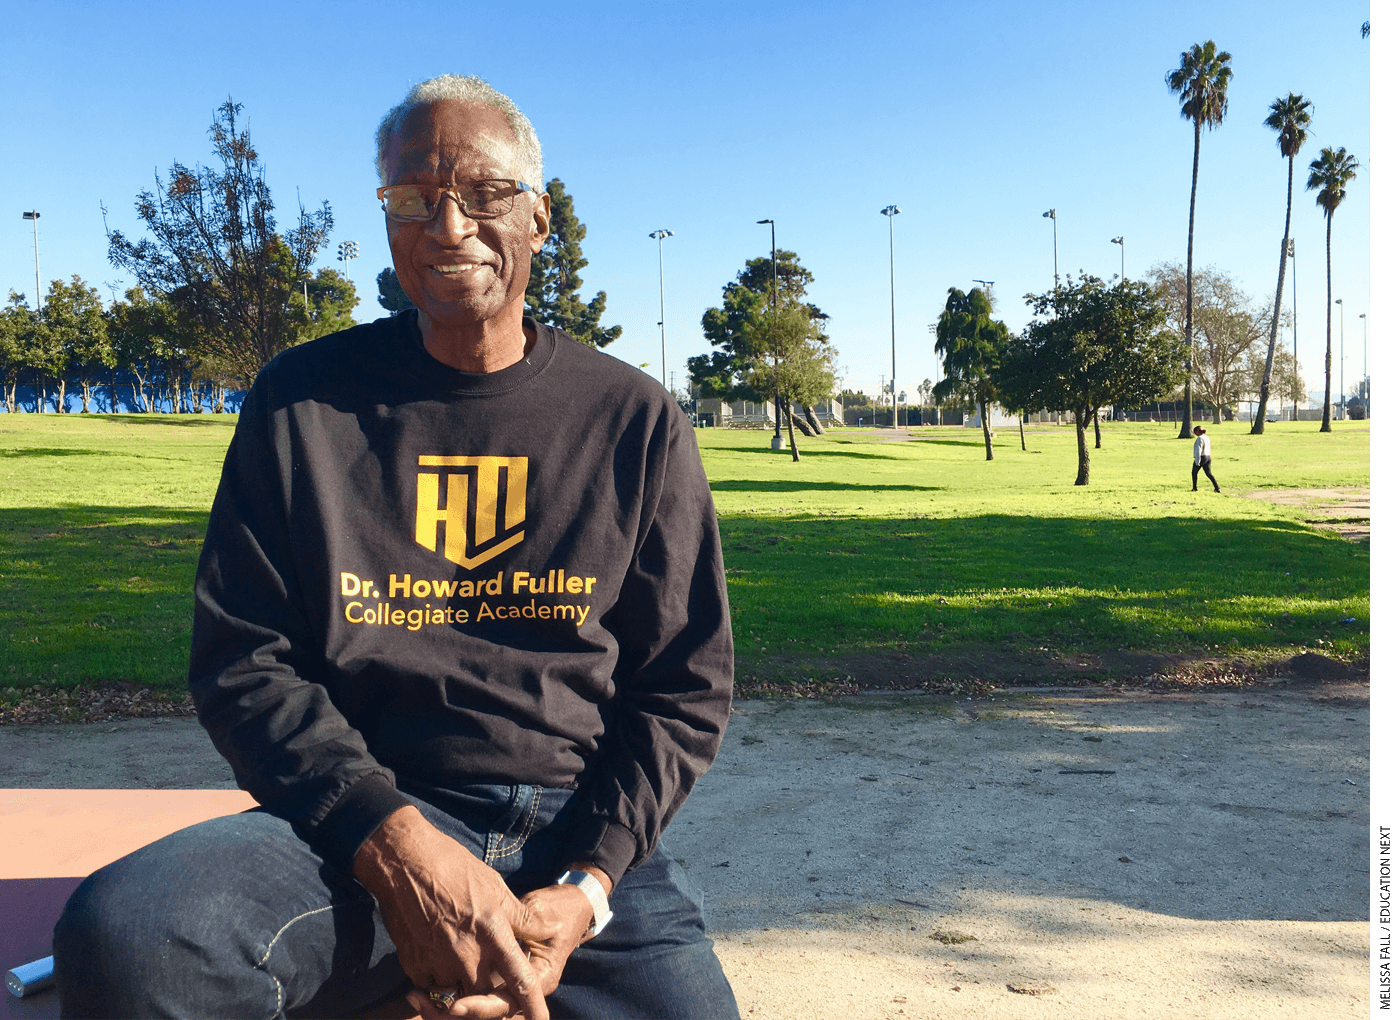 Howard Fuller at the Freedom Coalition for Charter Schools rally in Los Angeles in 2019. He wondered how DeVos could stomach working with Trump.